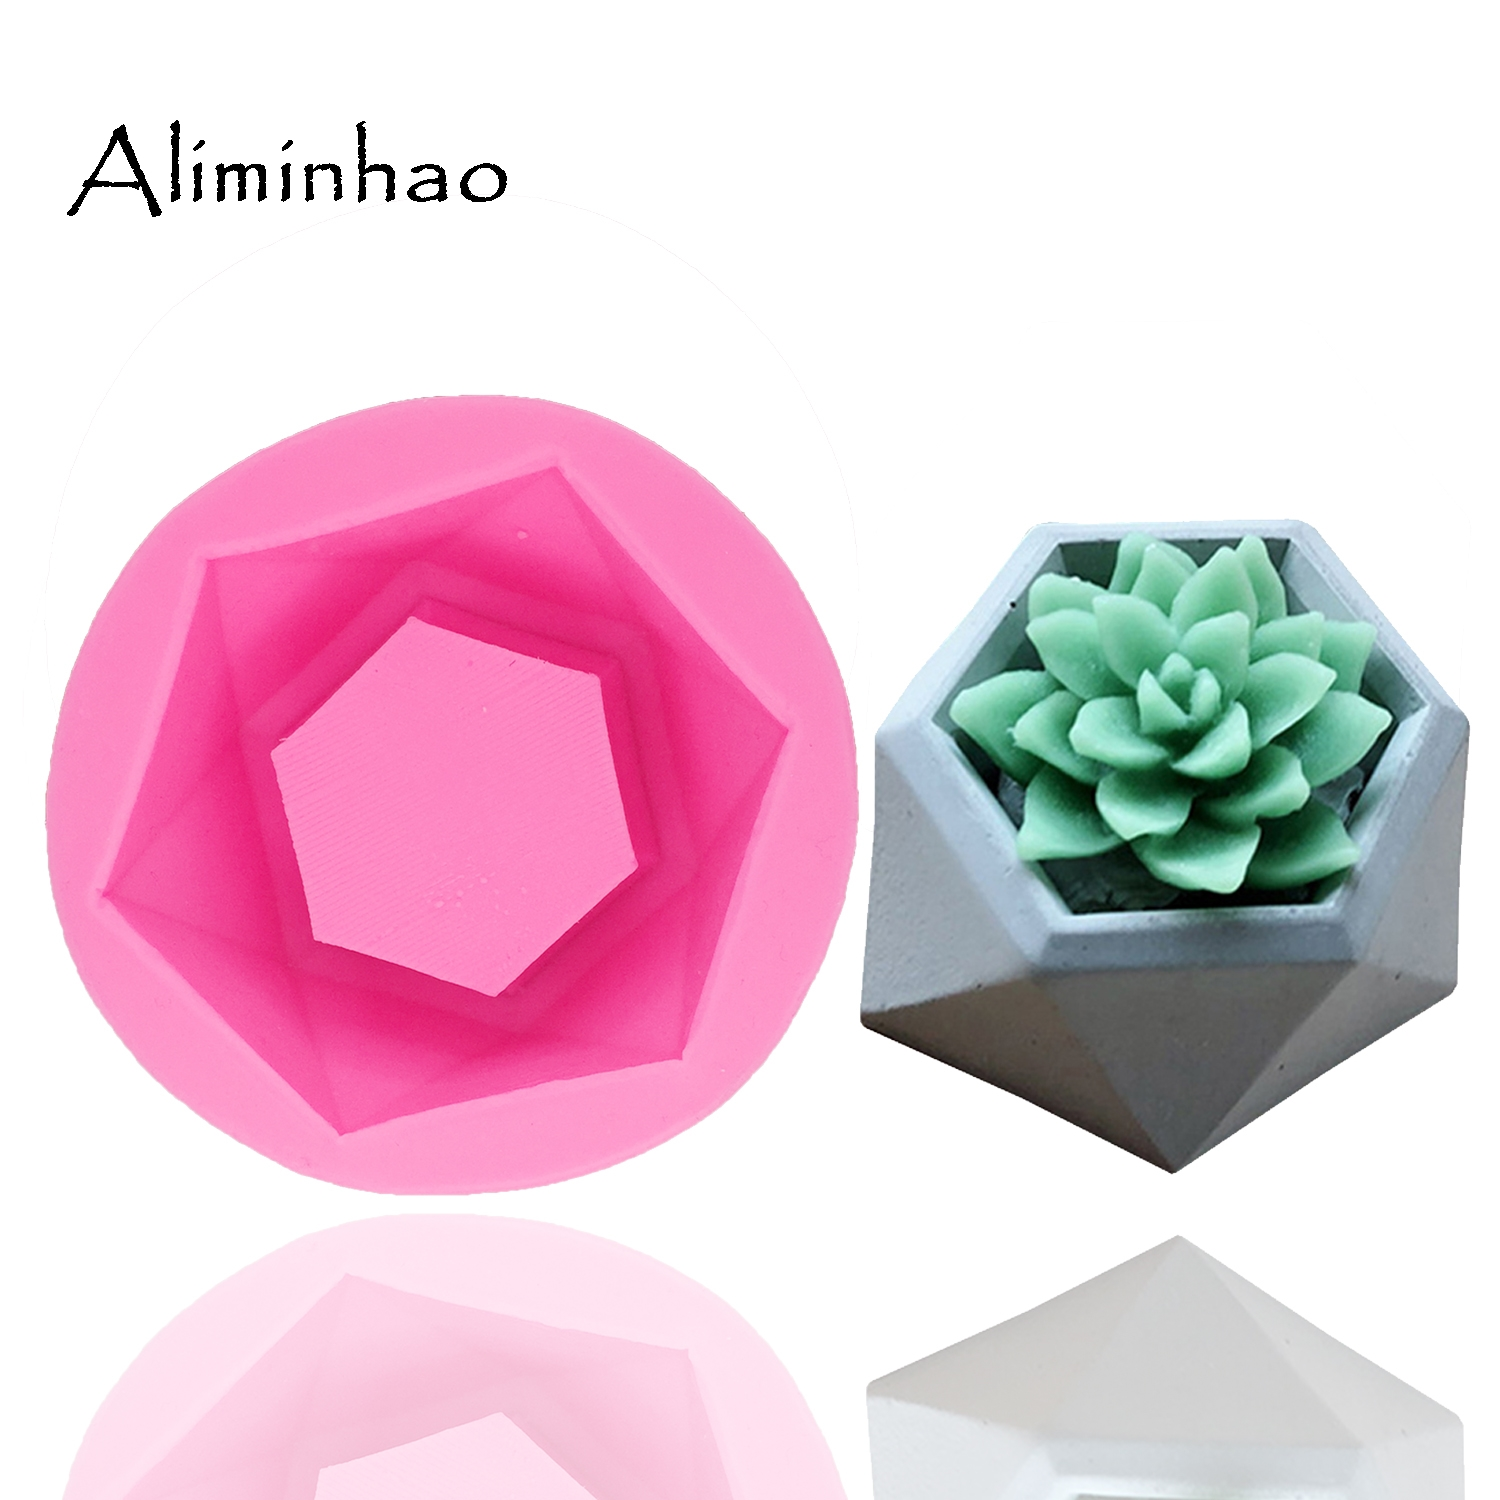 B1351 Silicone Molds For 3D Crafts Maker Cement Concrete Stone Project Flower Pot Mold DIY Candle Mold Reusable